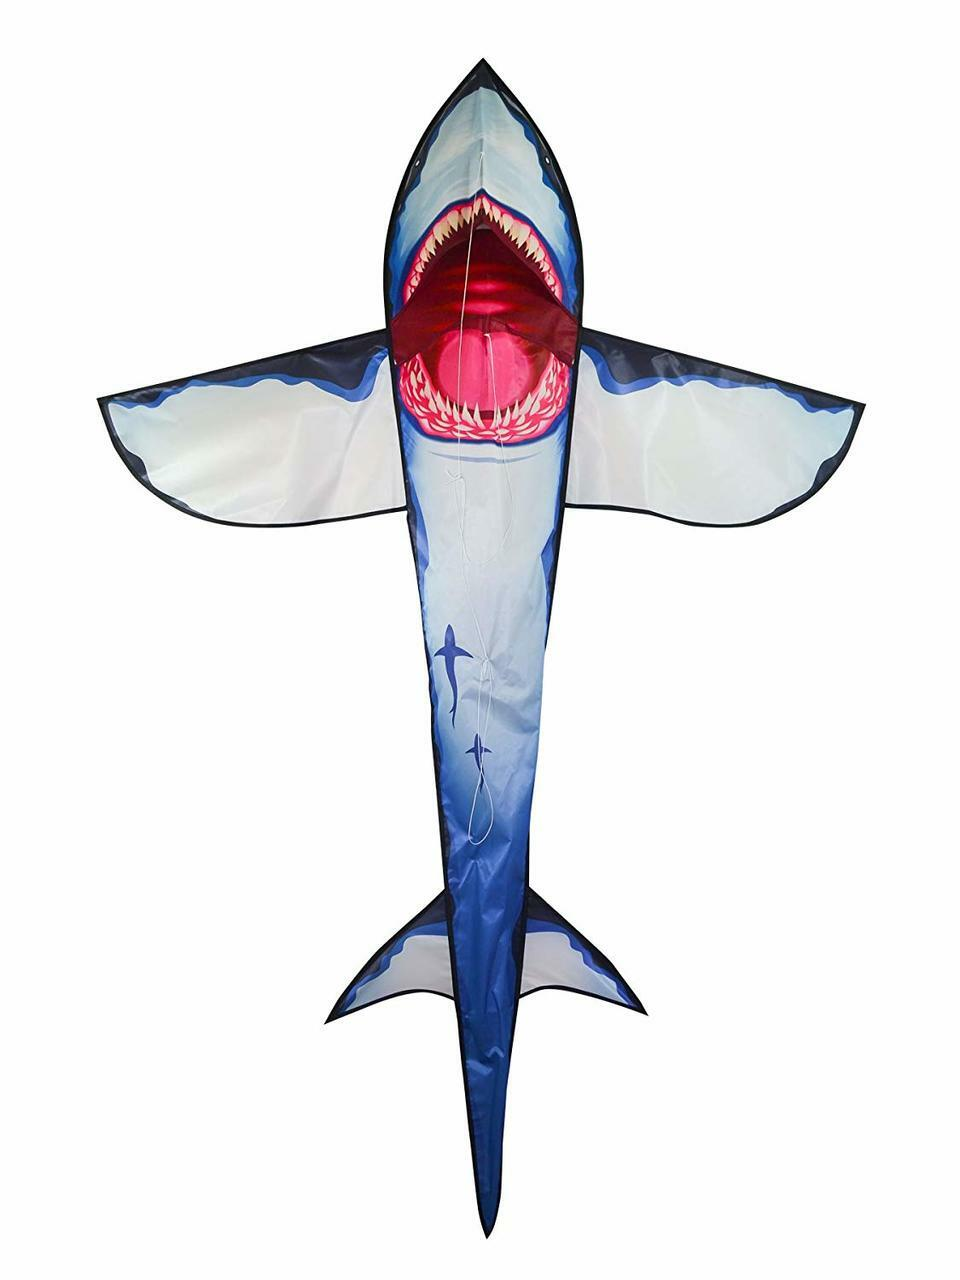 7.5' 3D Great White Shark Kite